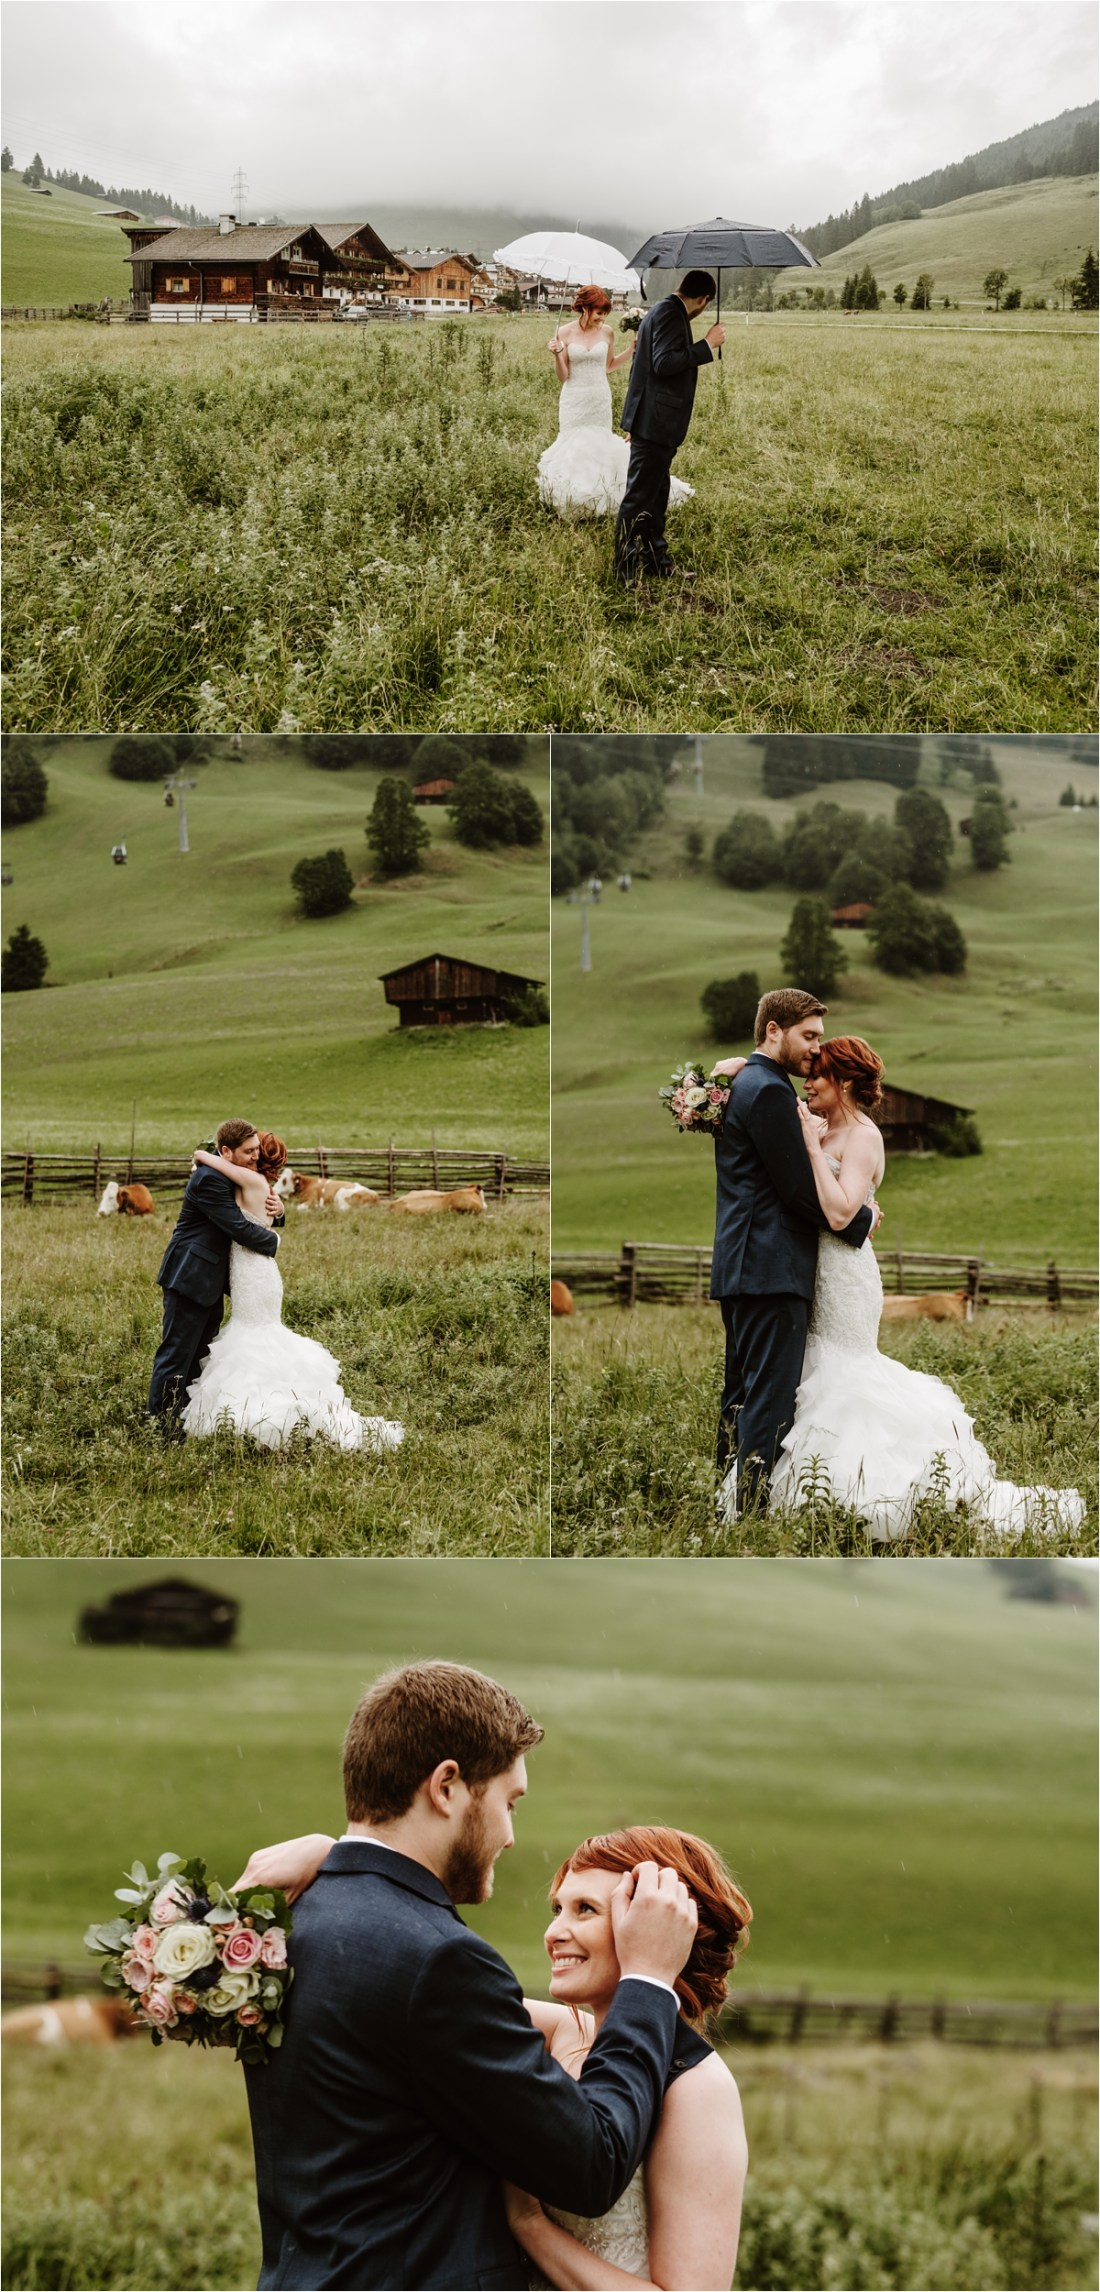 The bride and groom walk through the green meadows in Gerlos Austria. Photos by Wild Connections Photography